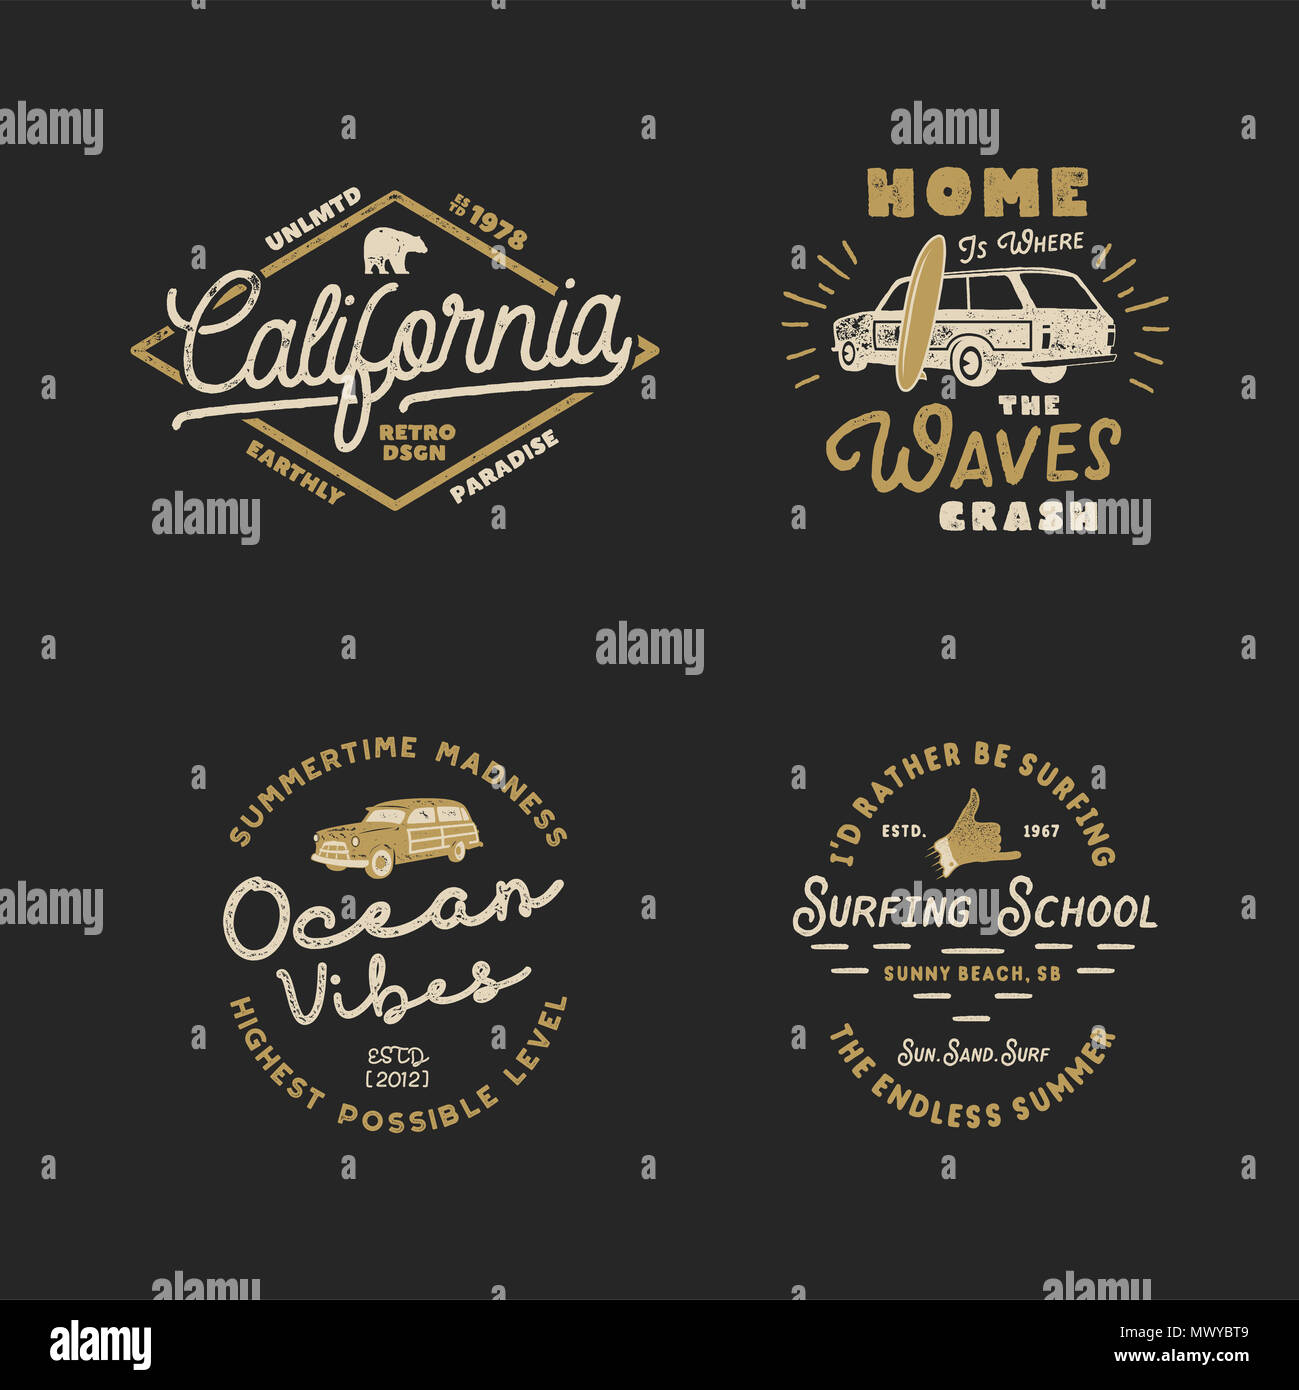 Vntage Hand Drawn Surfing Graphics and Emblems for web design or print. Surfer logotypes. Surf Logo. Summer surf logo typography insignia collection. Stock hipster patches isolated on white - Stock Image